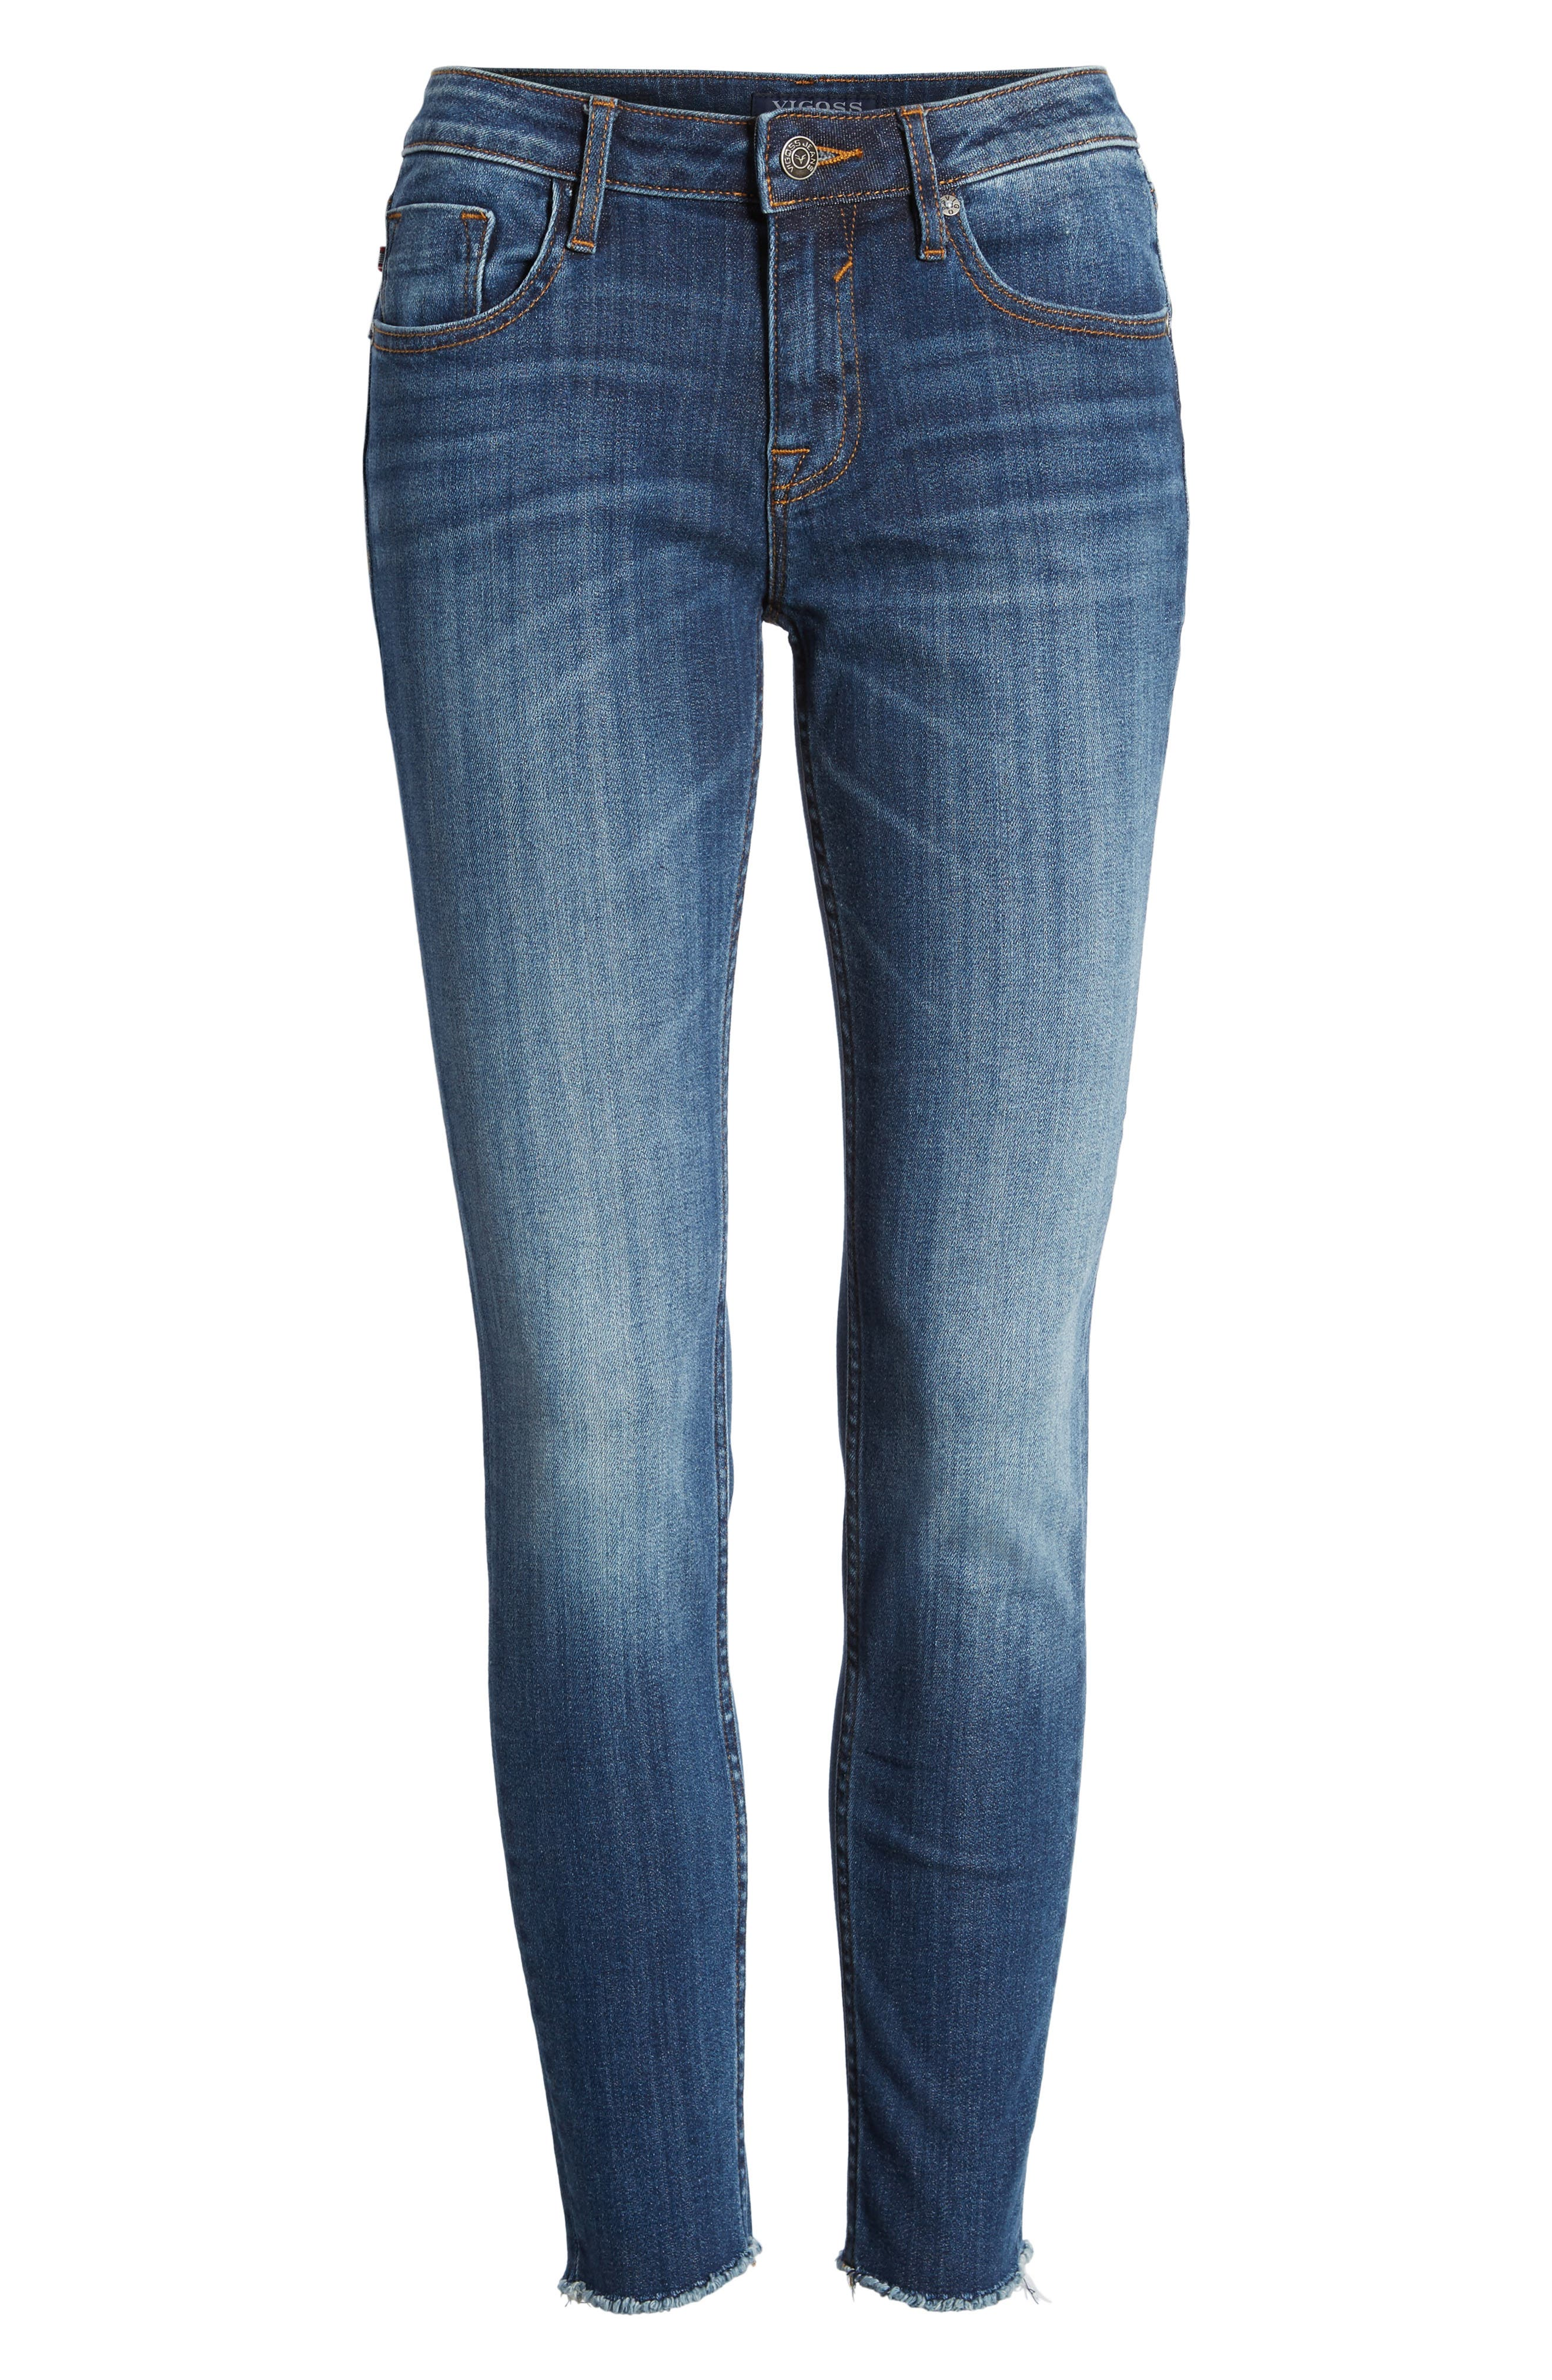 Jagger Mid-Rise Skinny Jeans,                             Alternate thumbnail 7, color,                             Med Wash